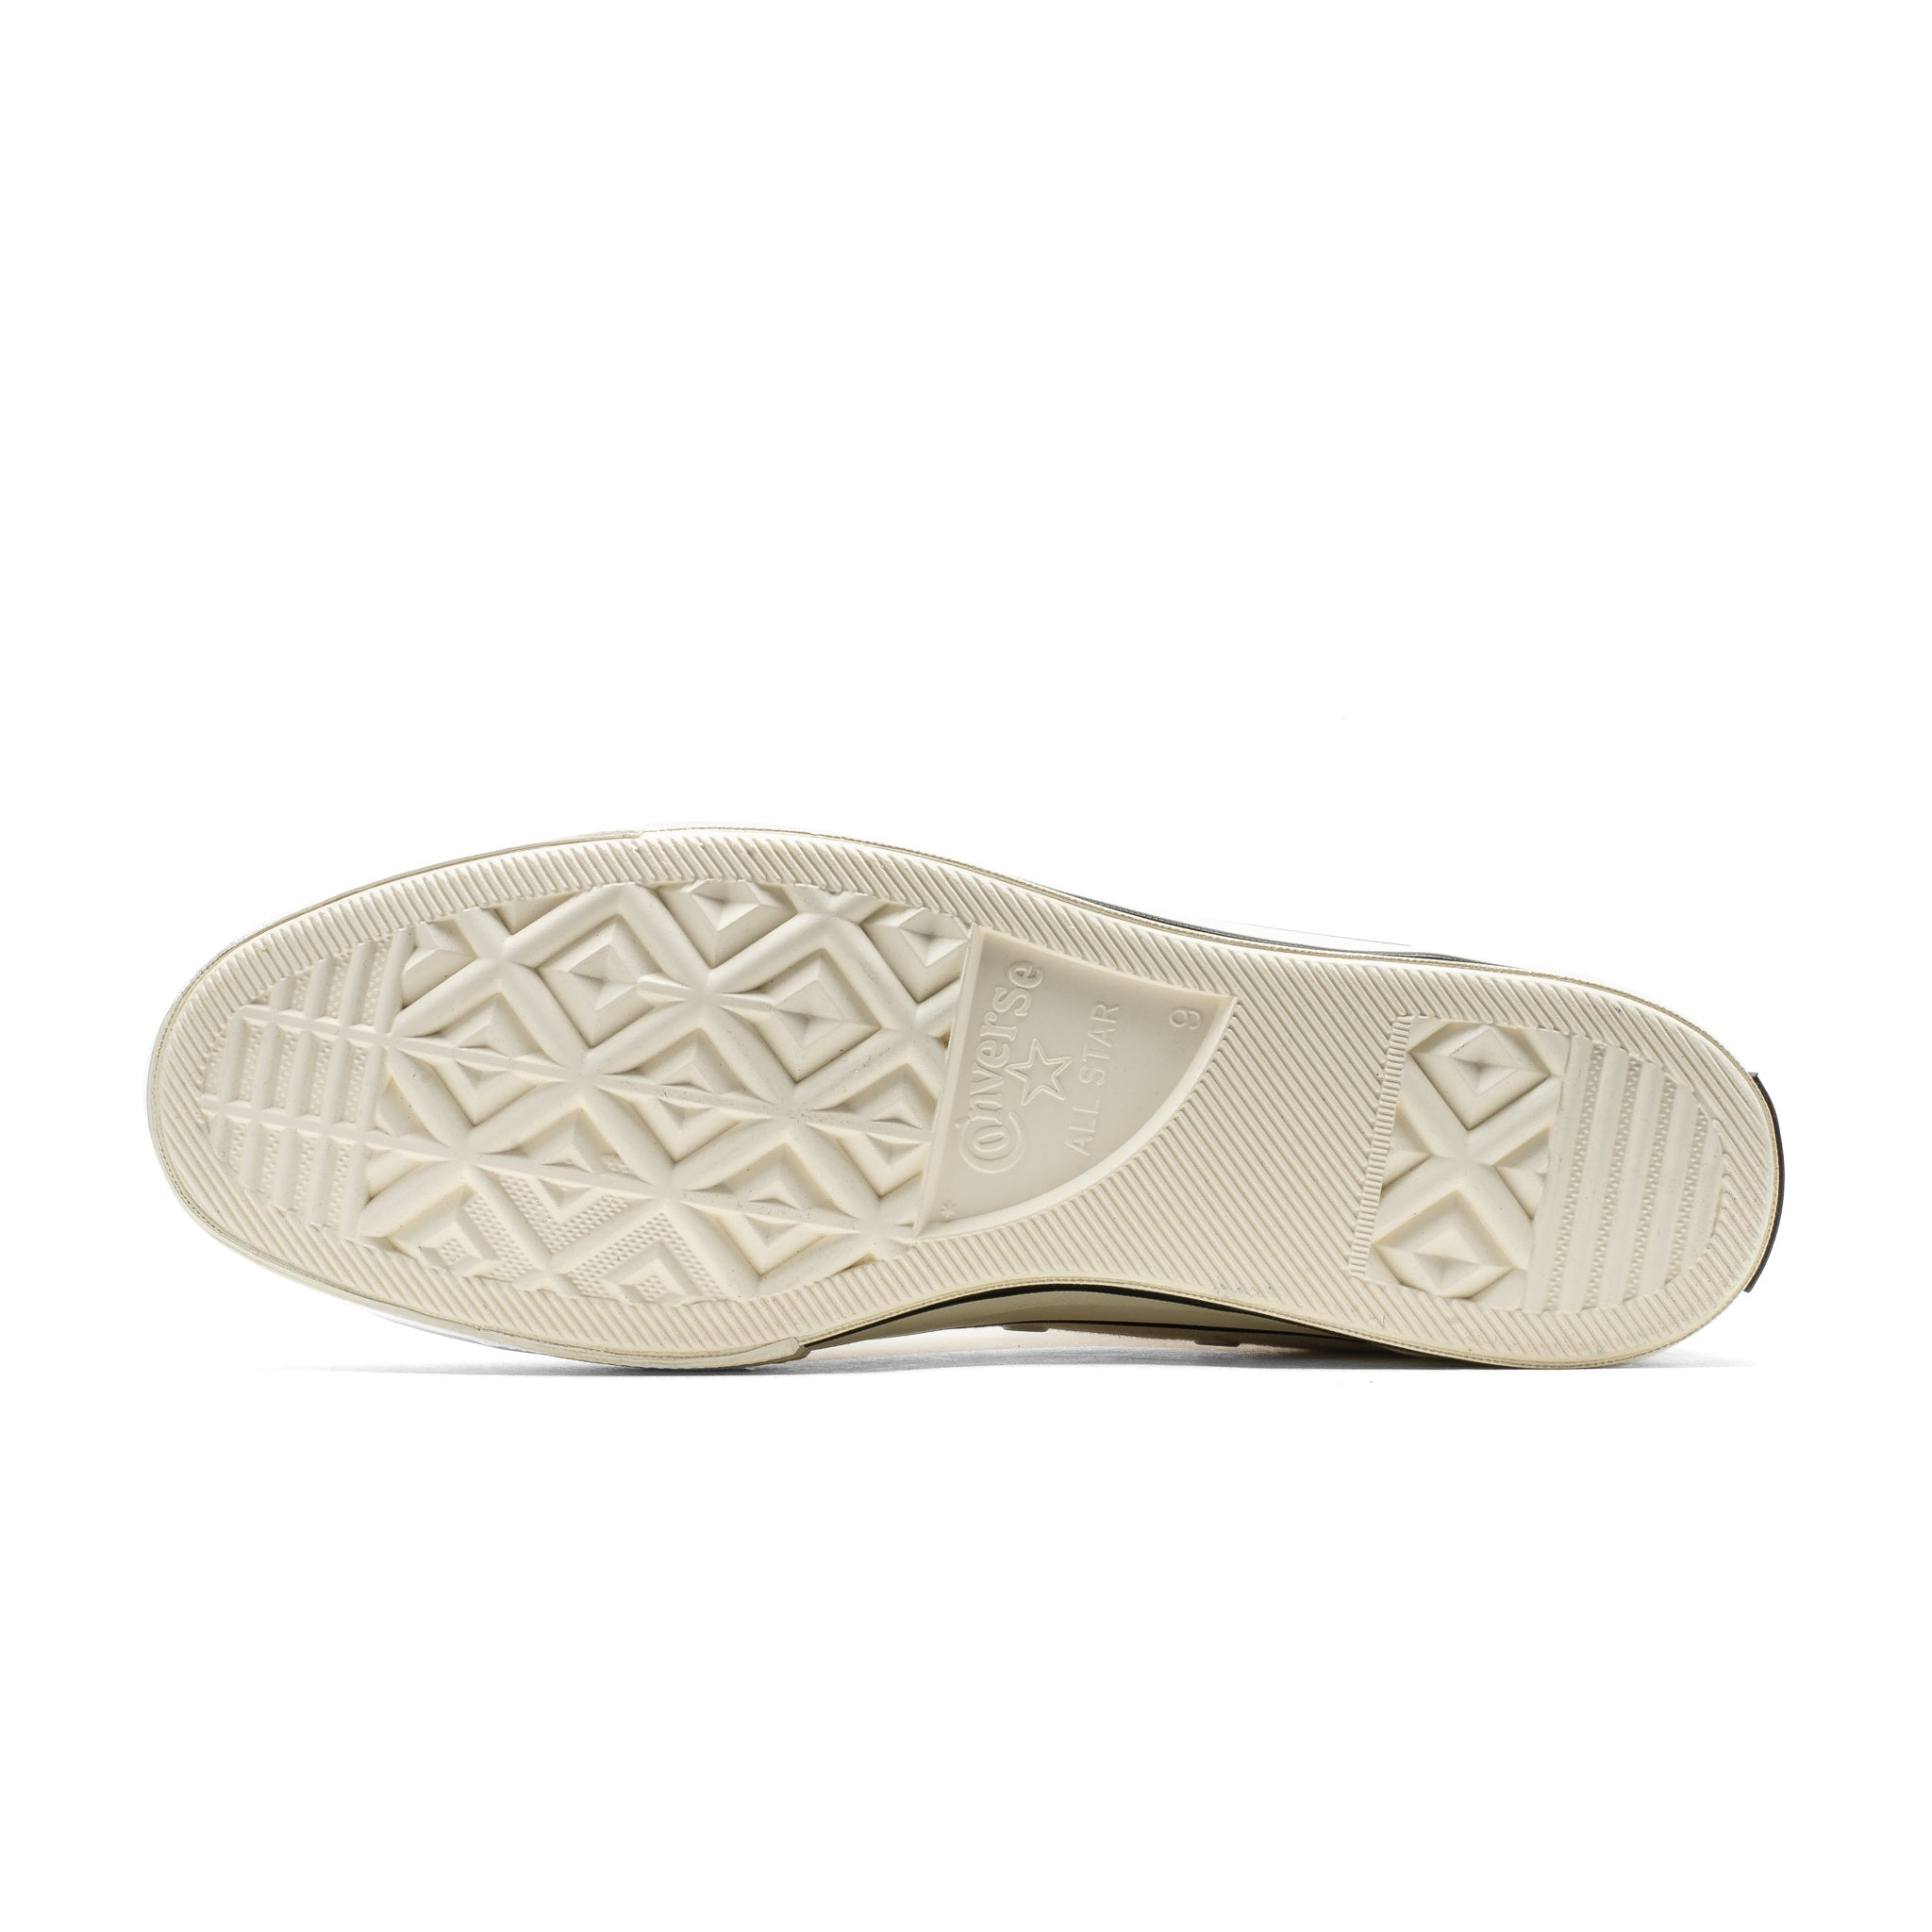 Fear of God Chuck 70 HI 167955C Ivory